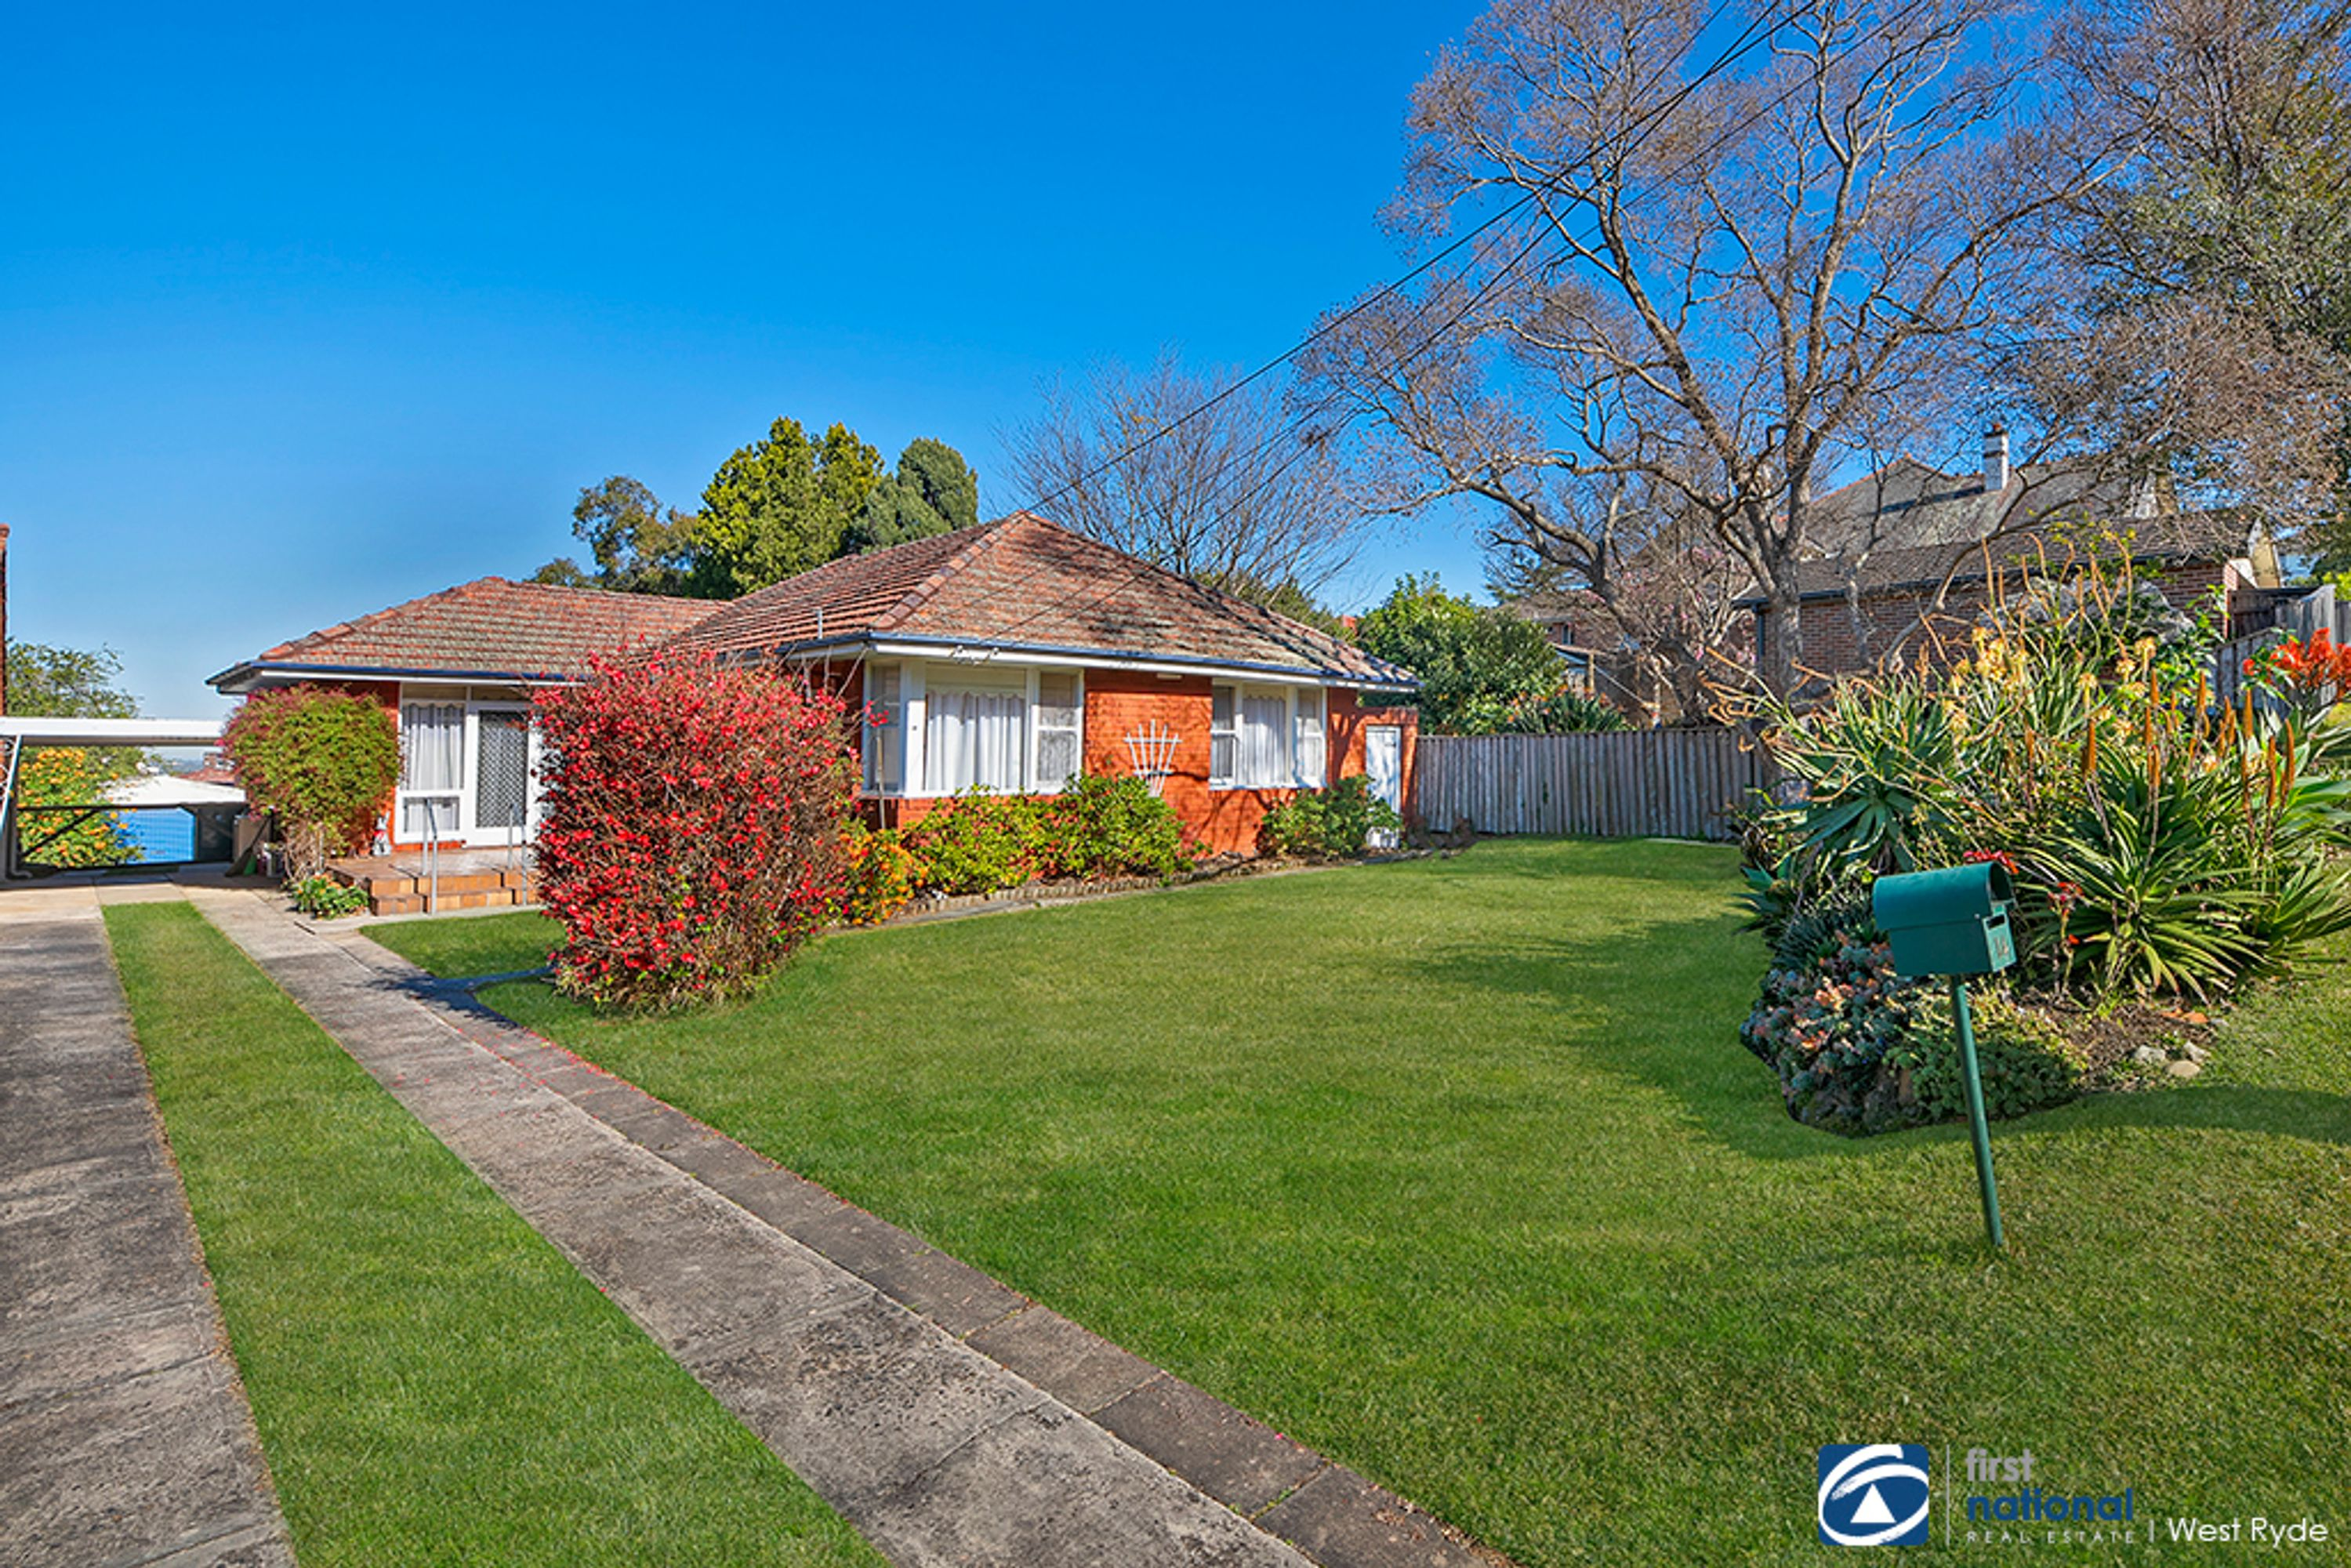 14 Goodwin Street, West Ryde, NSW 2114